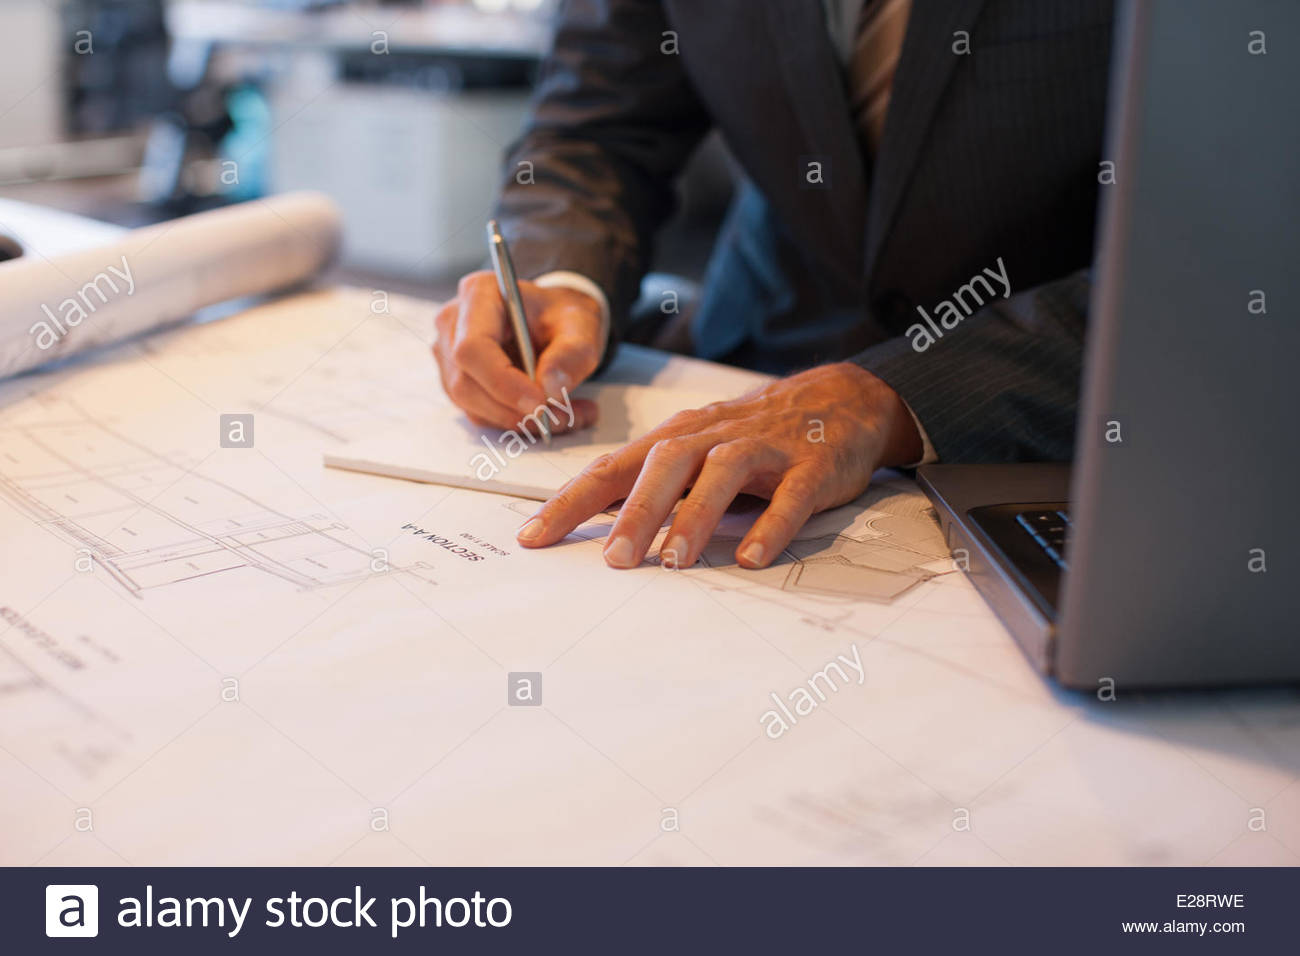 Businessman working on blueprints in office - Stock Image